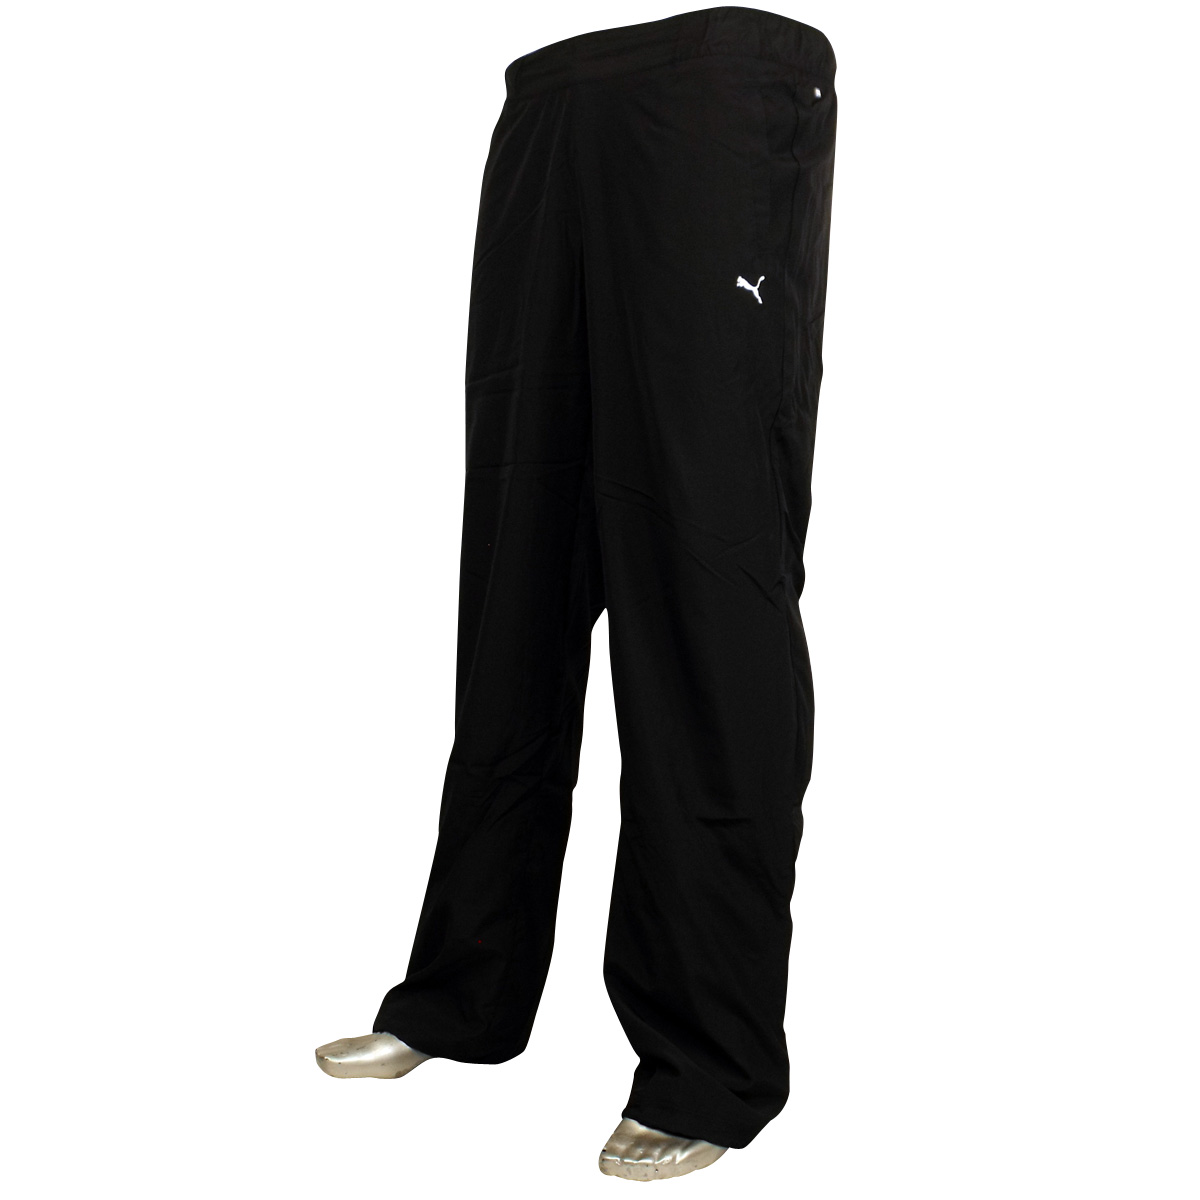 Workout Pants for Women - Whether you're going to the gym or just on the go, Champion has leggings, tights, shorts and sweatpants to fit any routine. Stretch and bend in total comfort with yoga pants ideal for a your favorite pose.